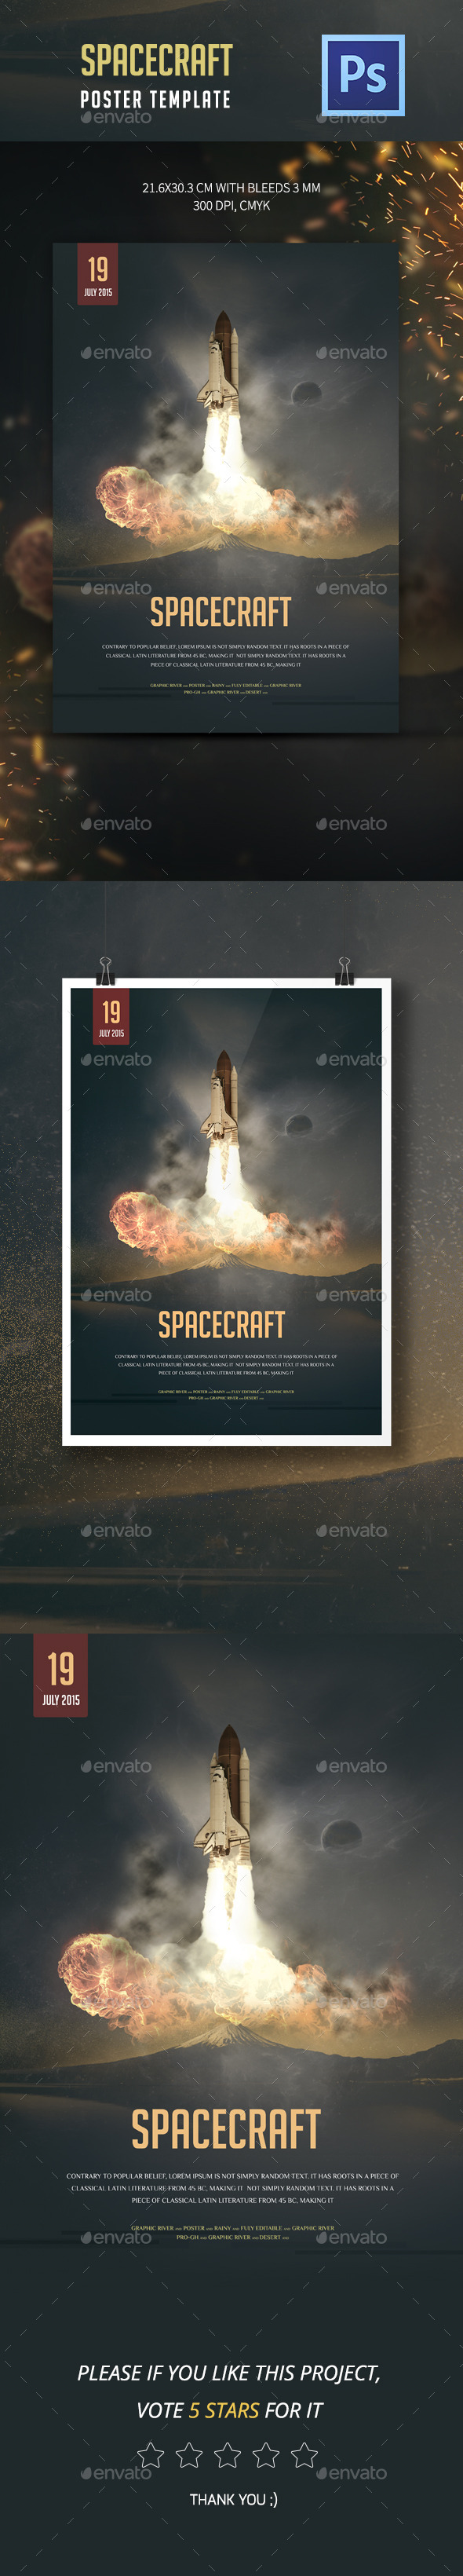 GraphicRiver Spacecraft Poster Template 11959297